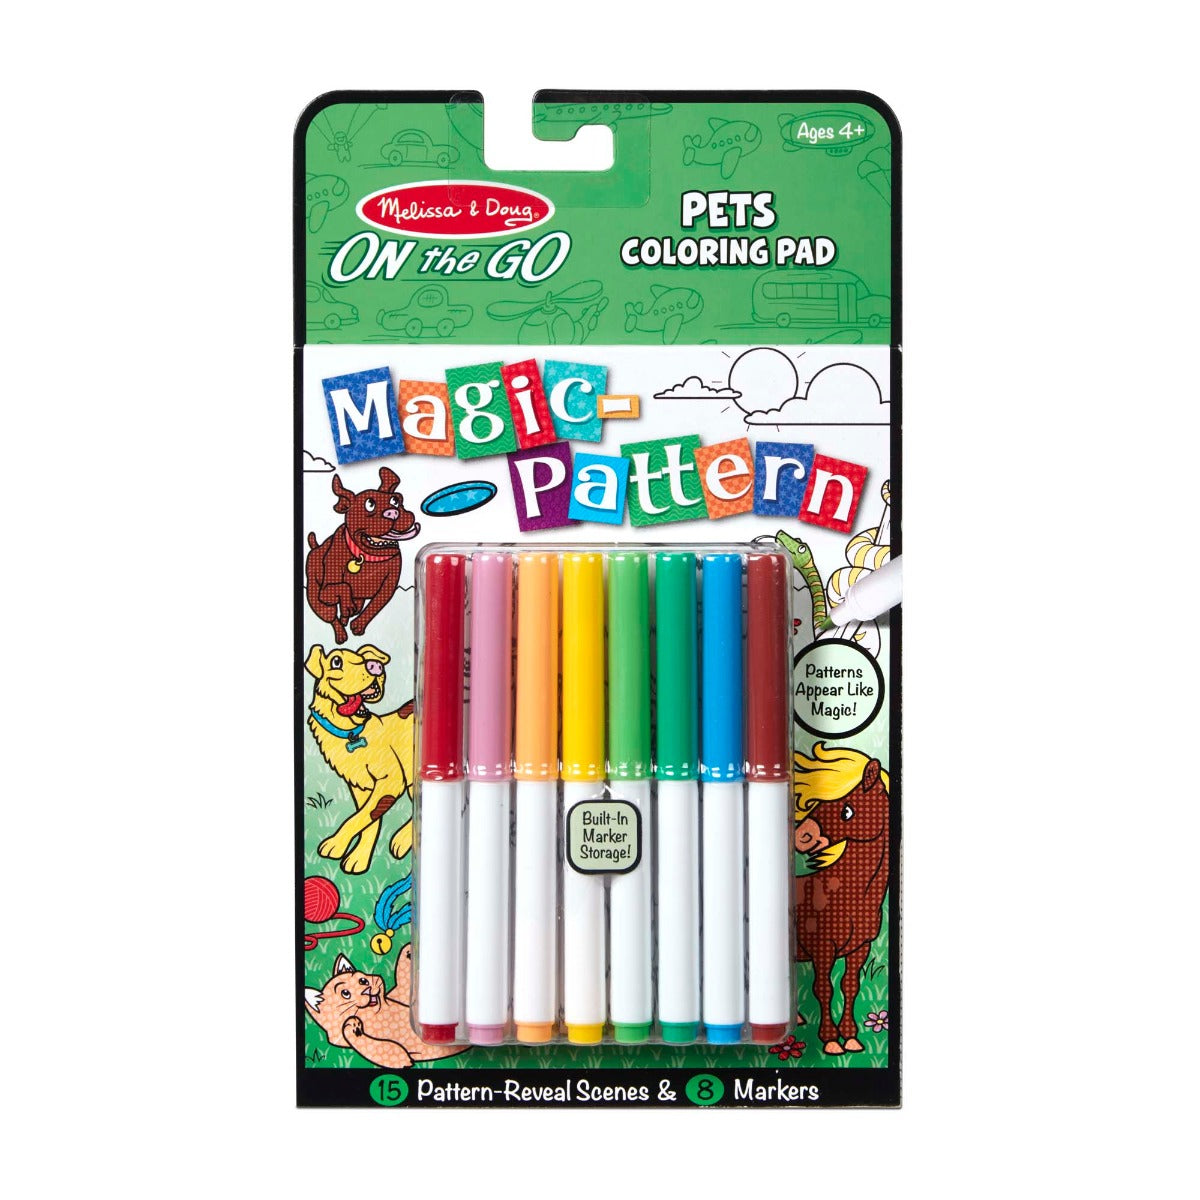 On the Go Magic Patter Pets Colouring Book